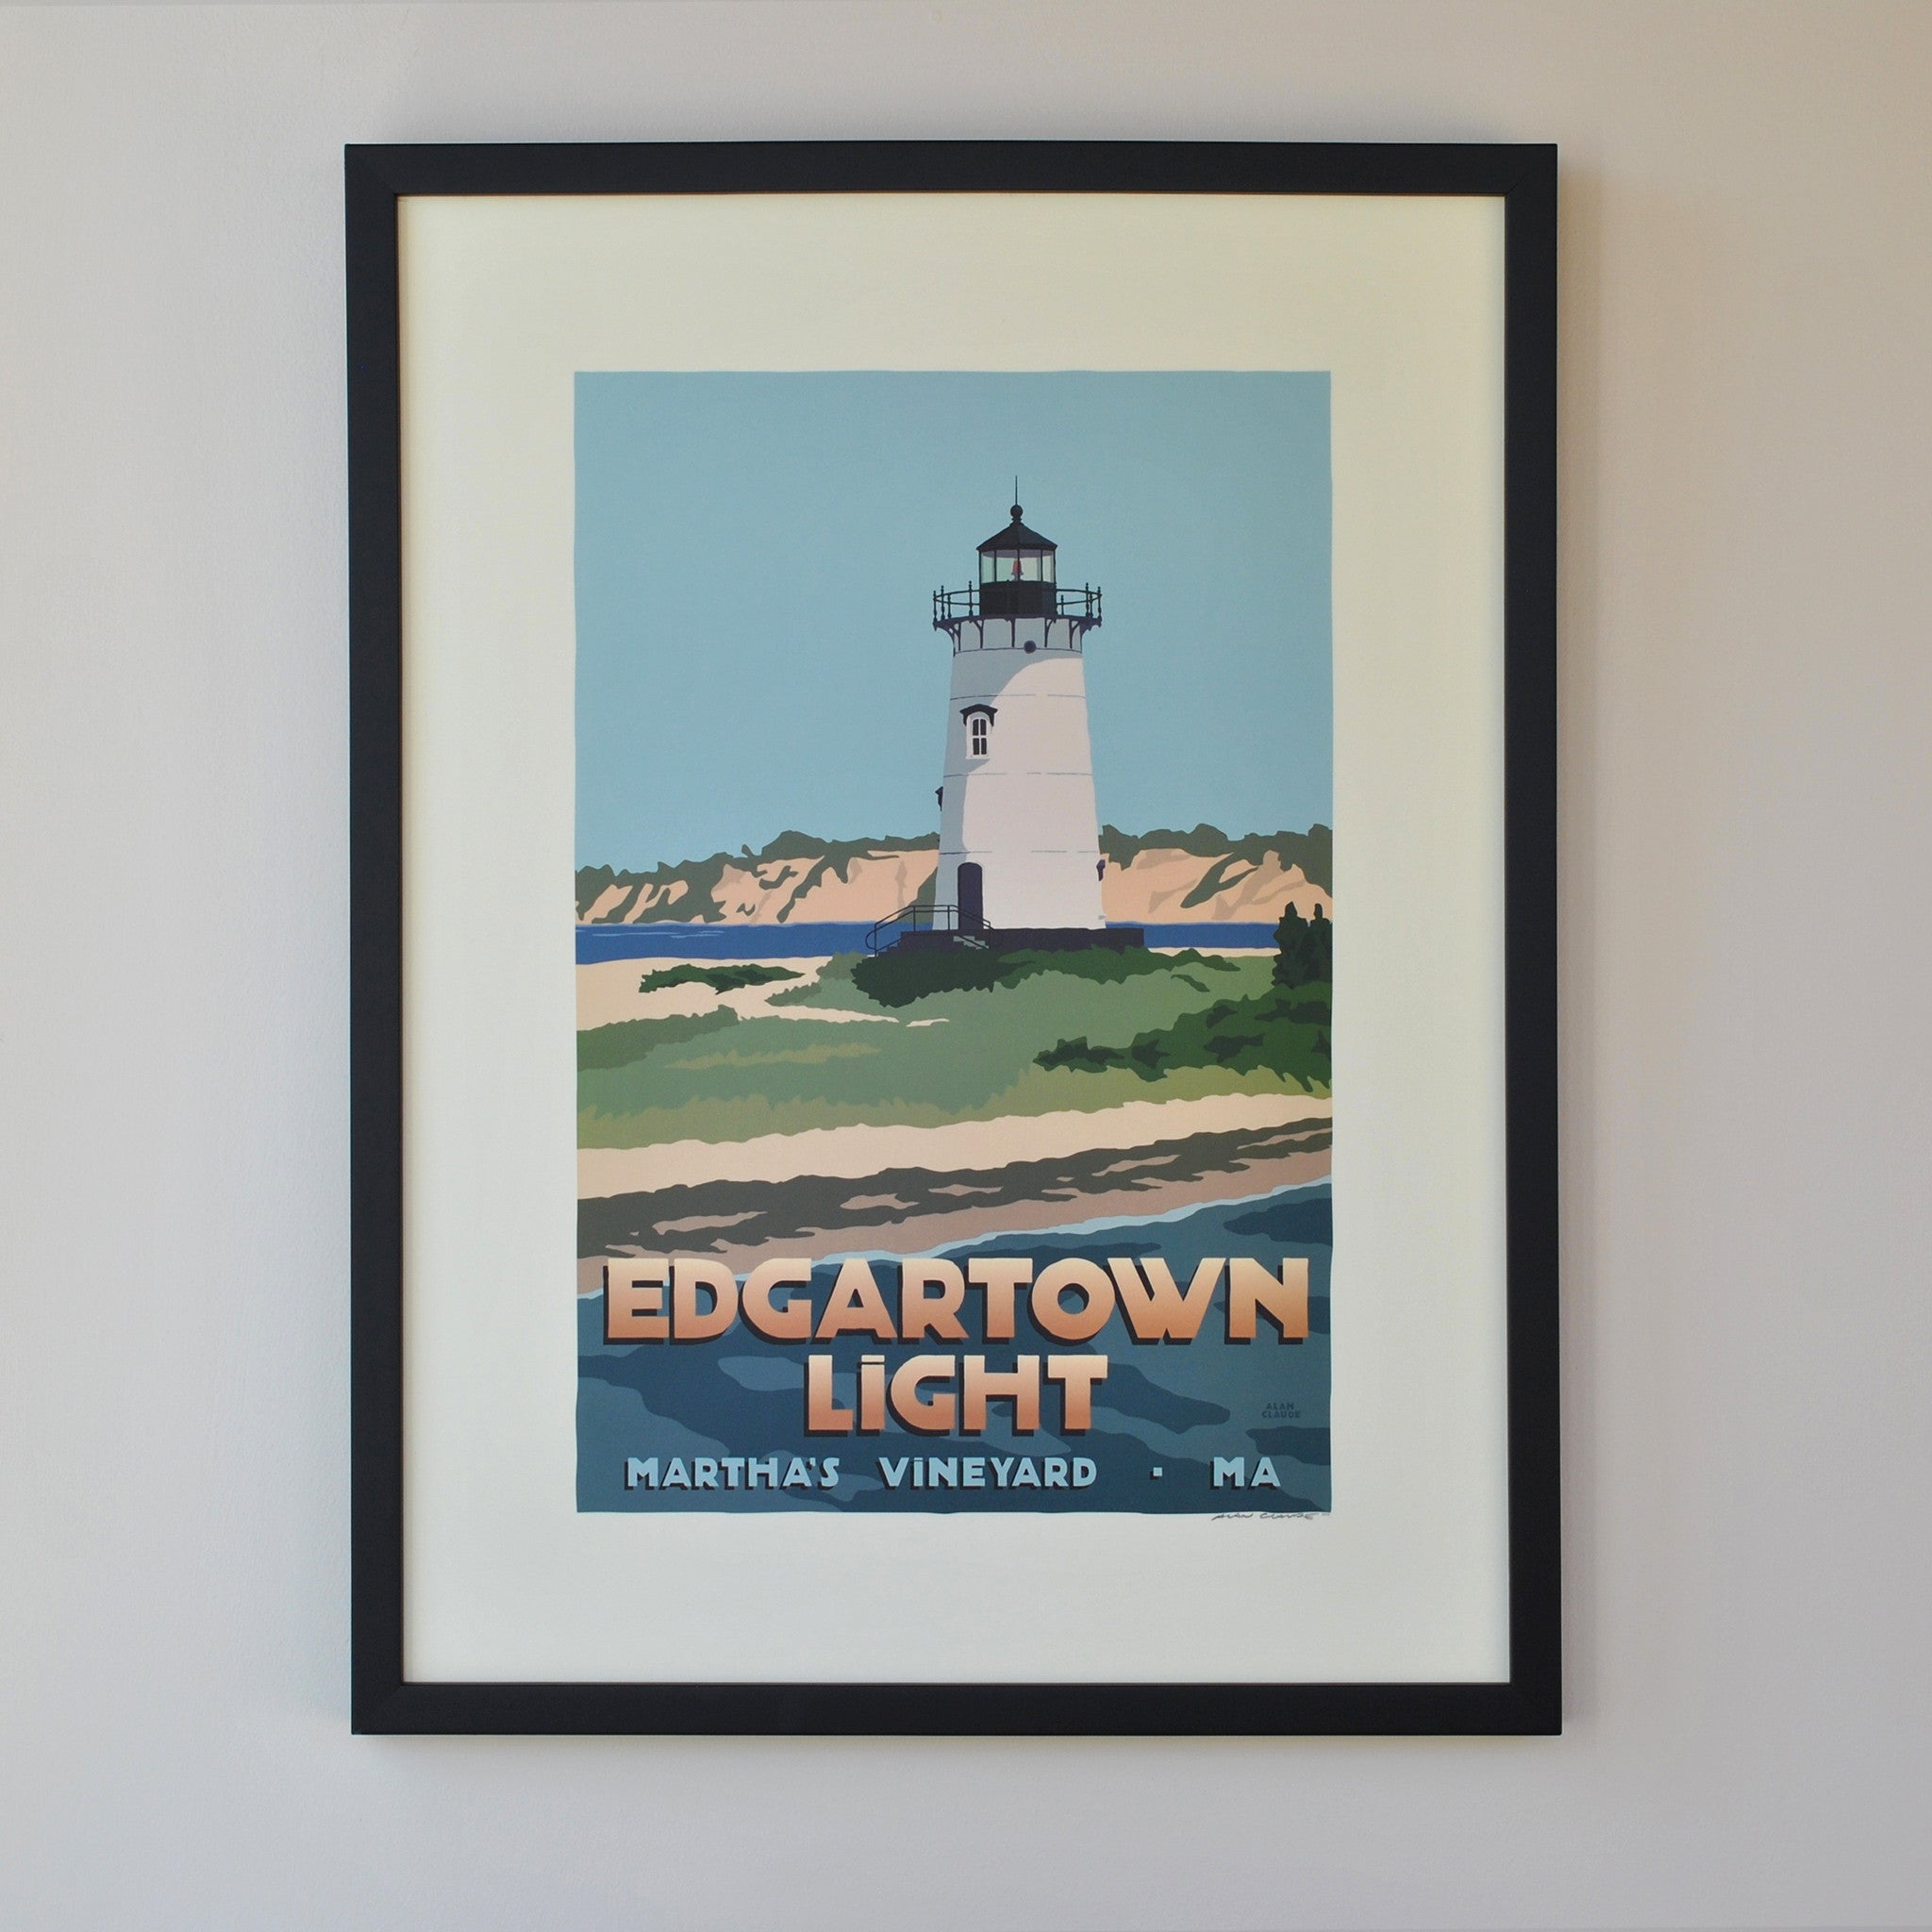 "Edgartown Light Art Print 18"" x 24"" Framed Travel Poster - Massachusetts"